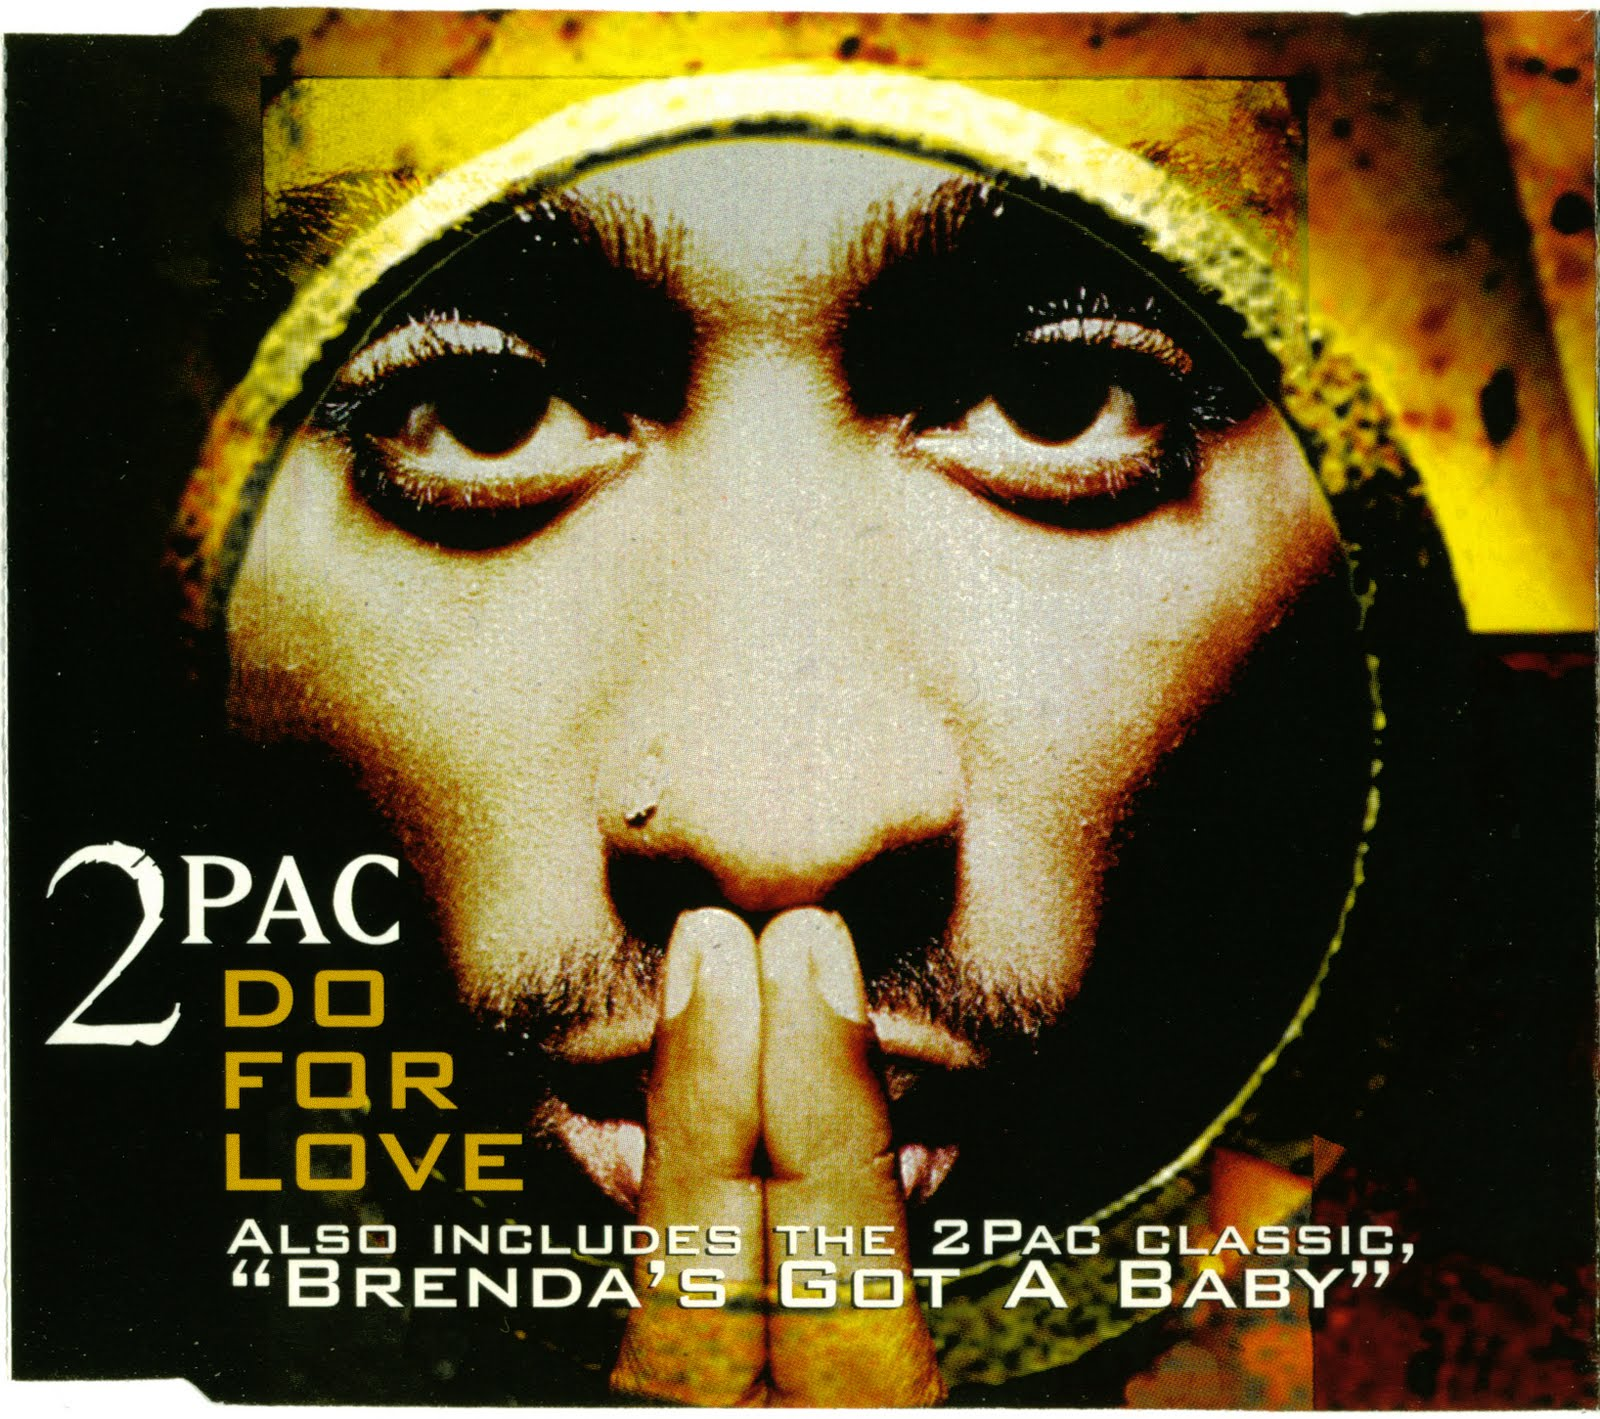 Promo, Import, Retail CD Singles & Albums: 2Pac - Do For